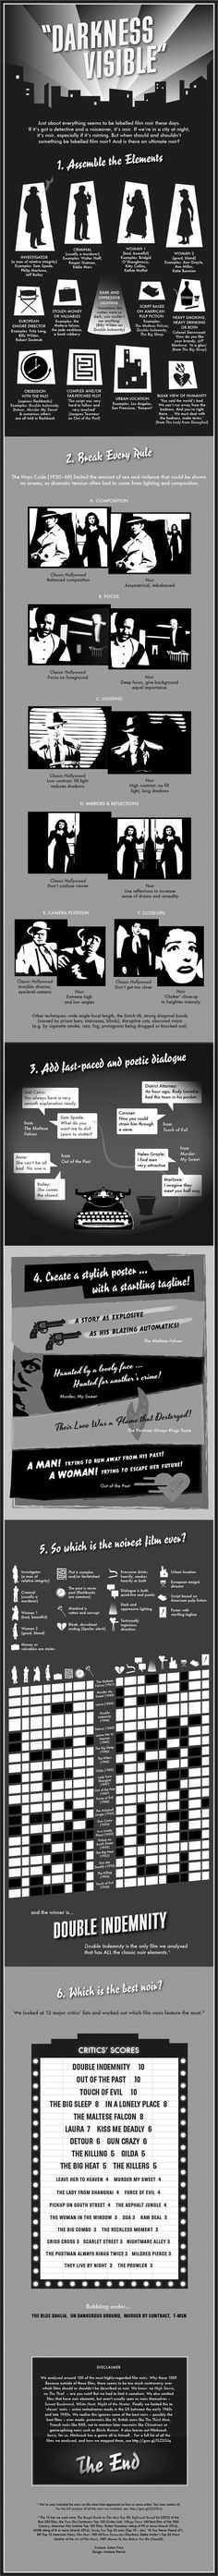 Darkness Visible: An Infographic of Film Noir